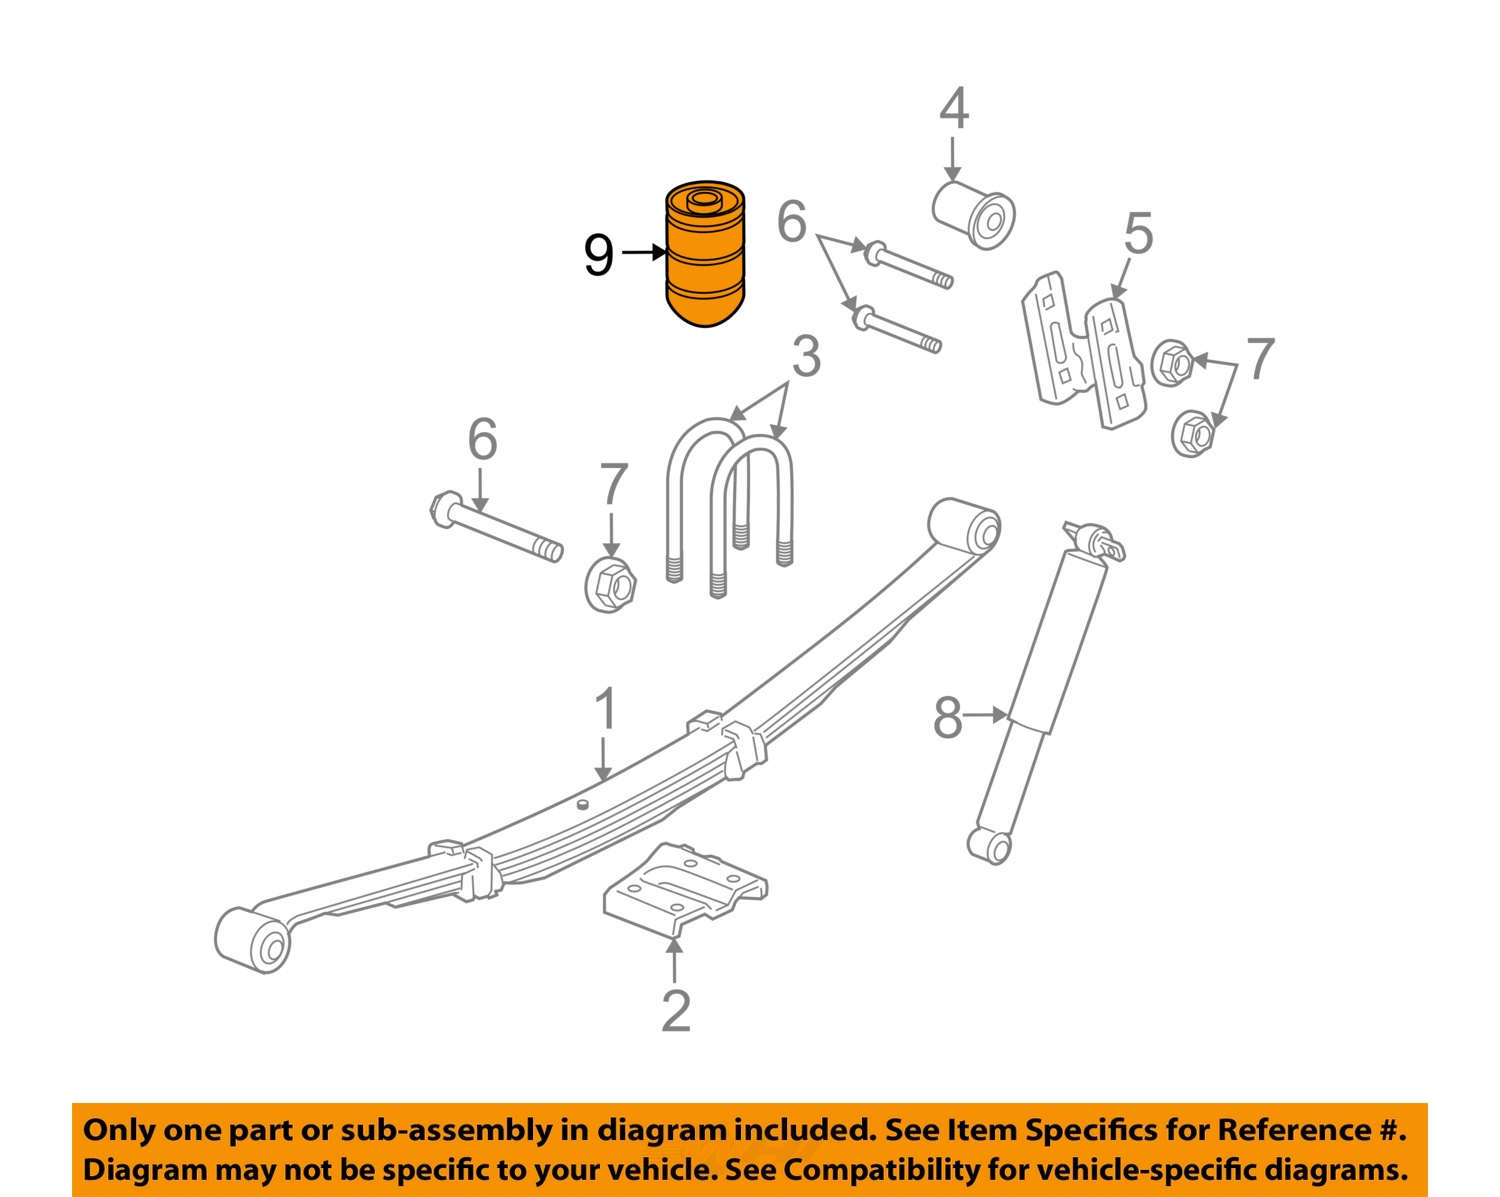 Hummer gm oem 06 10 h3 rear suspension auxiliary spring 15295277 9 on diagram only genuine oe factory original item sciox Choice Image